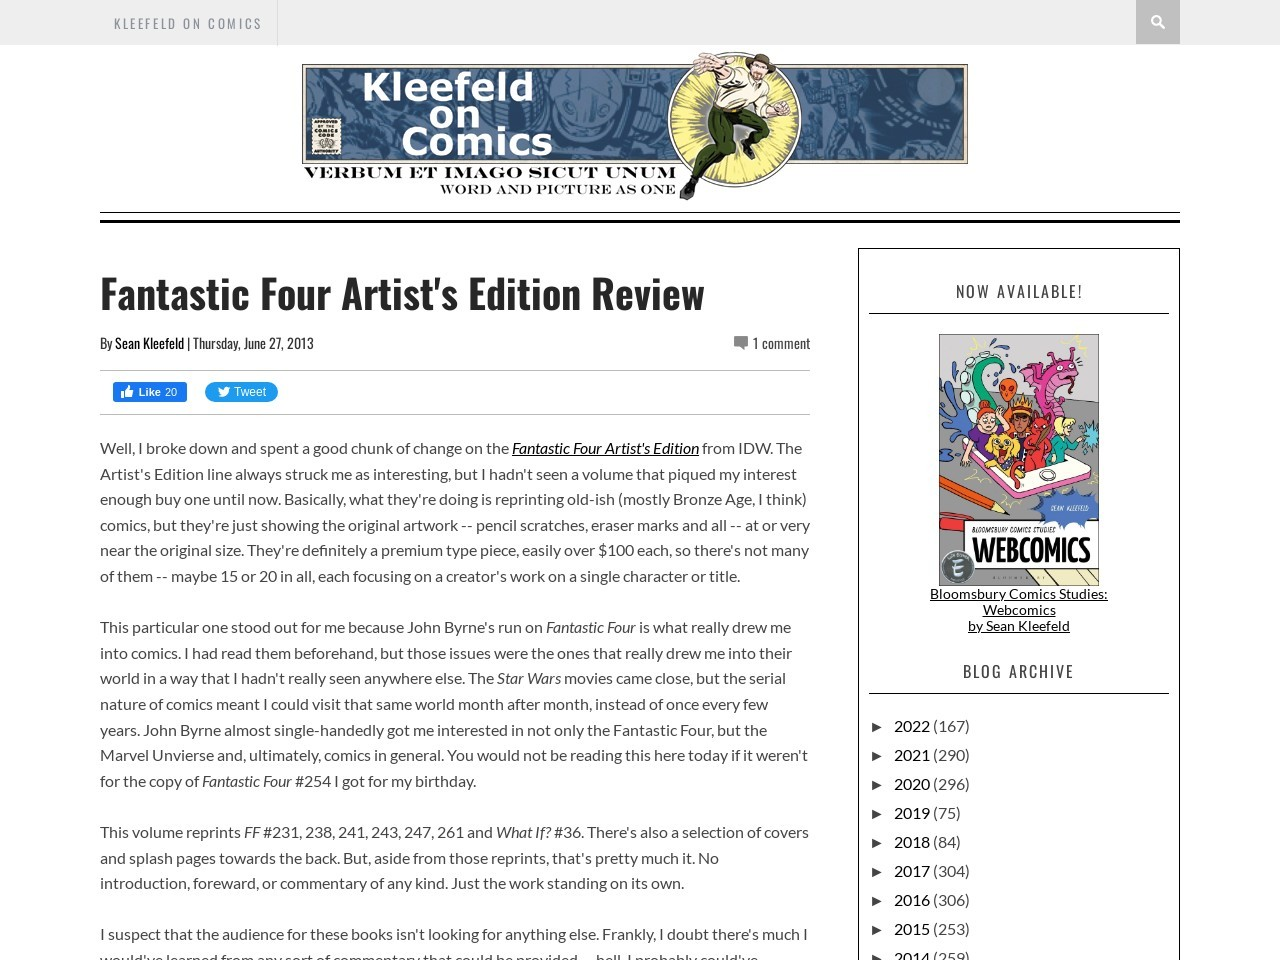 Kleefeld on Comics: Fantastic Four Artist's Edition Review